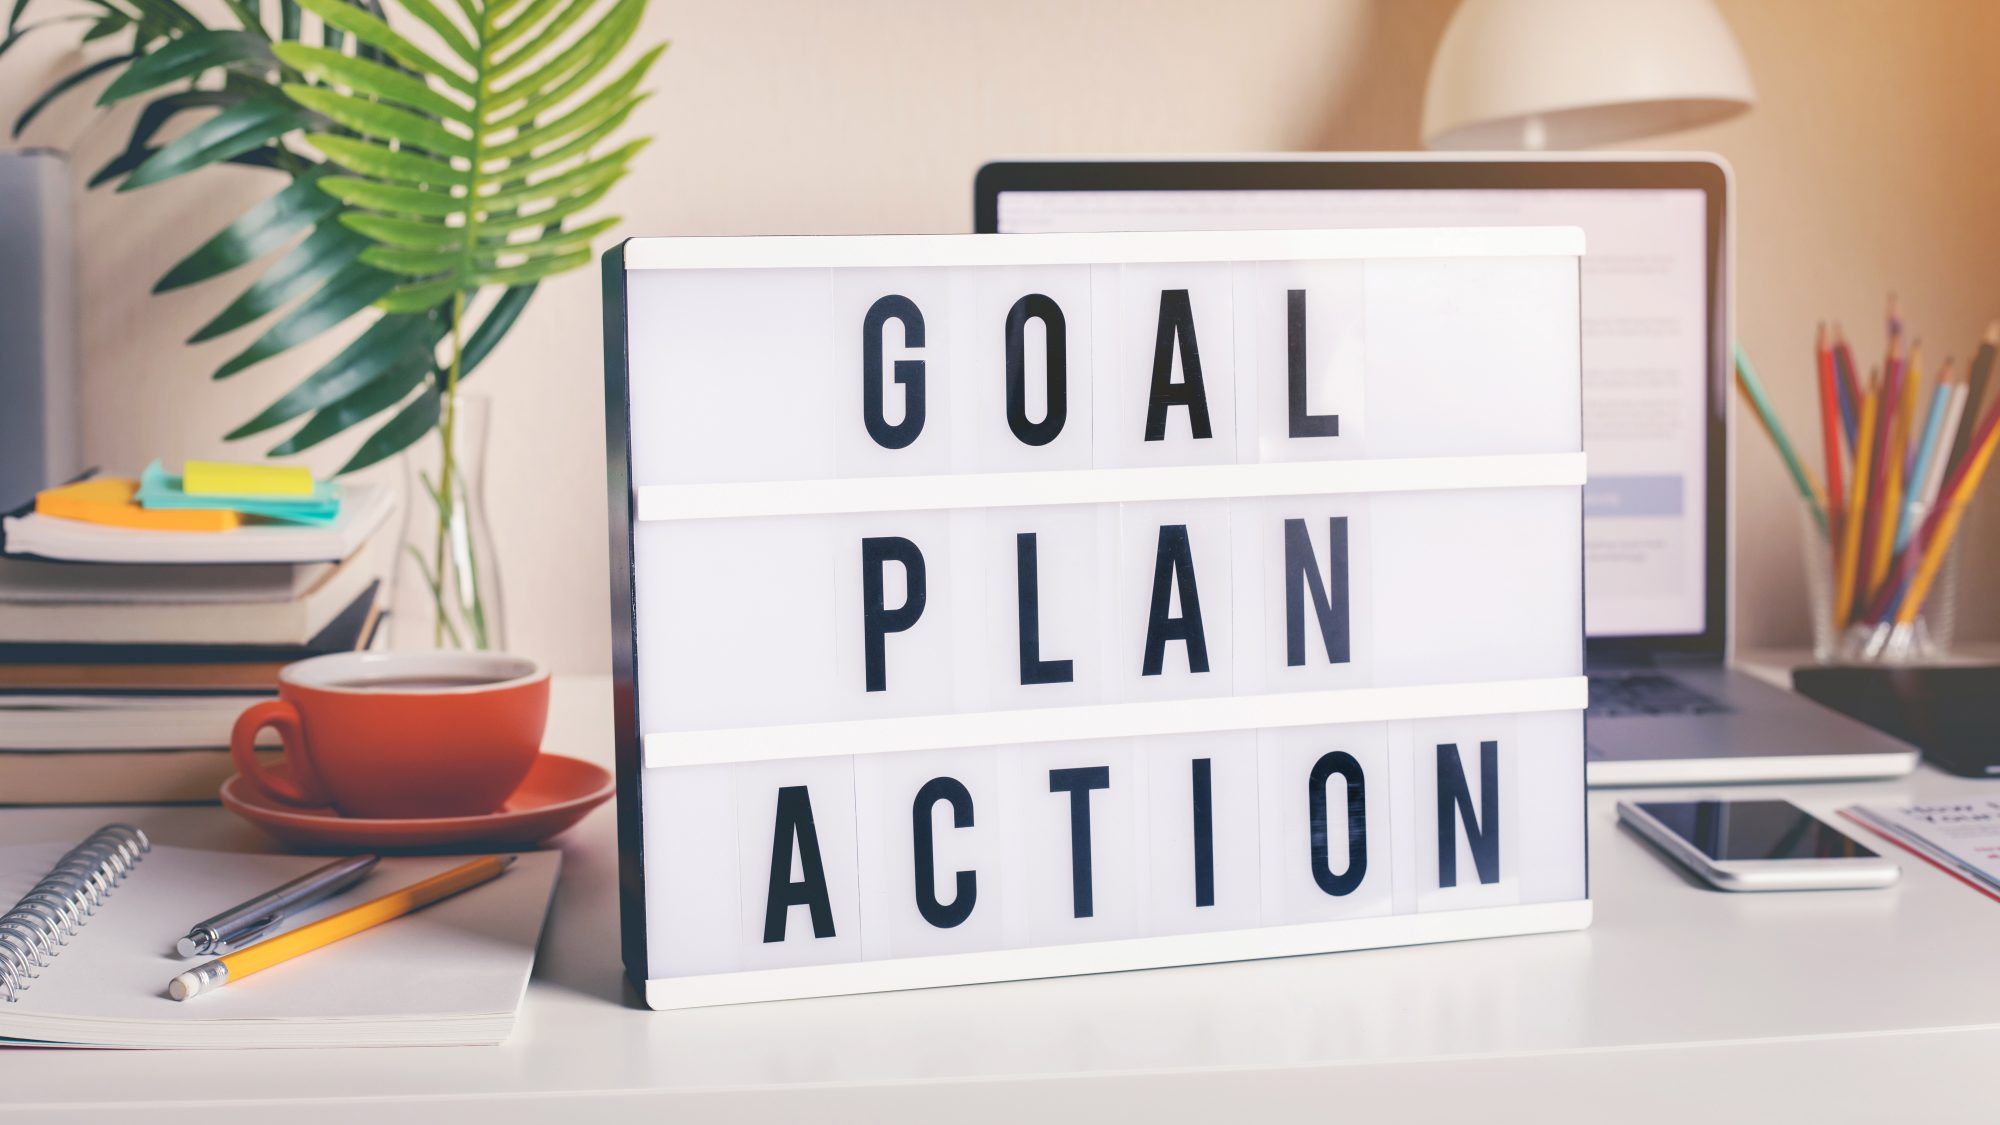 How to Accomplish Goals: Goal Plan Action letter board on a desk